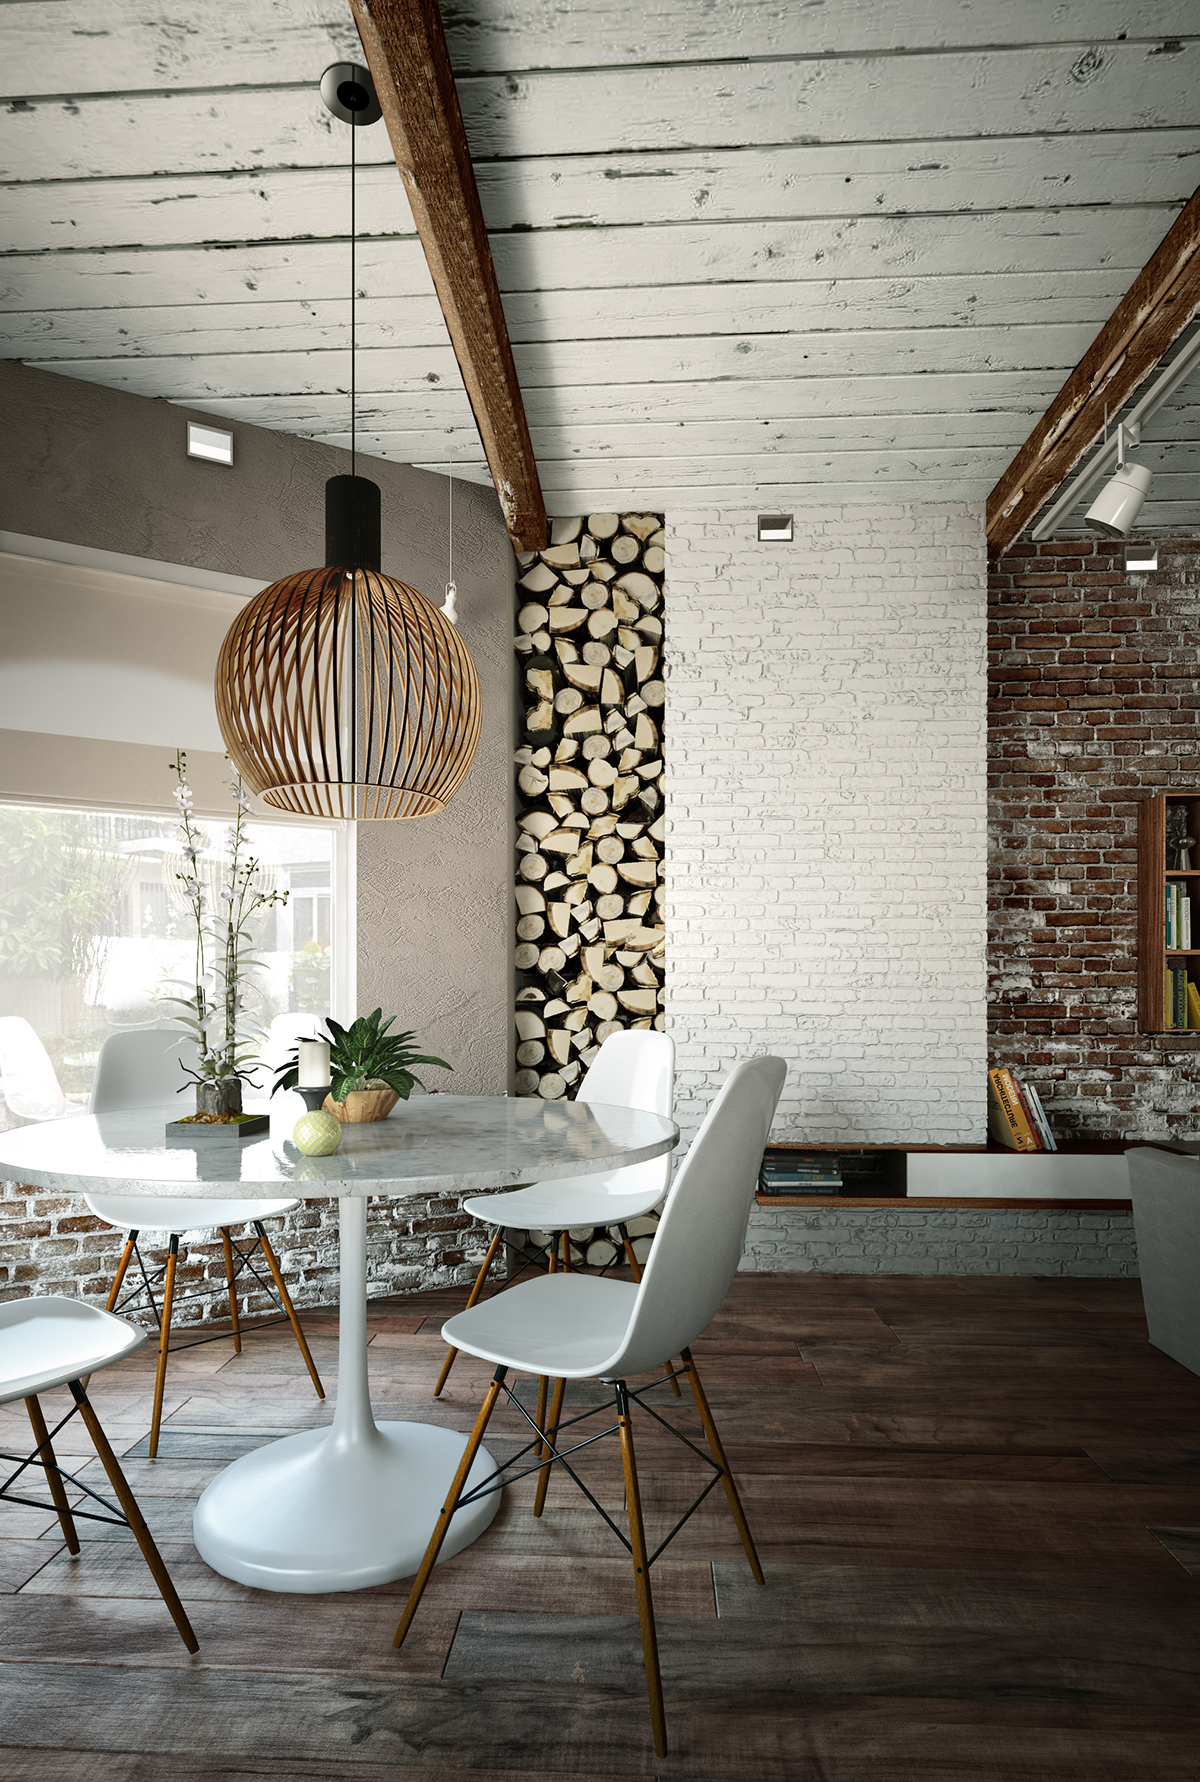 Firewood stacked in the wall makes the dining area cozier